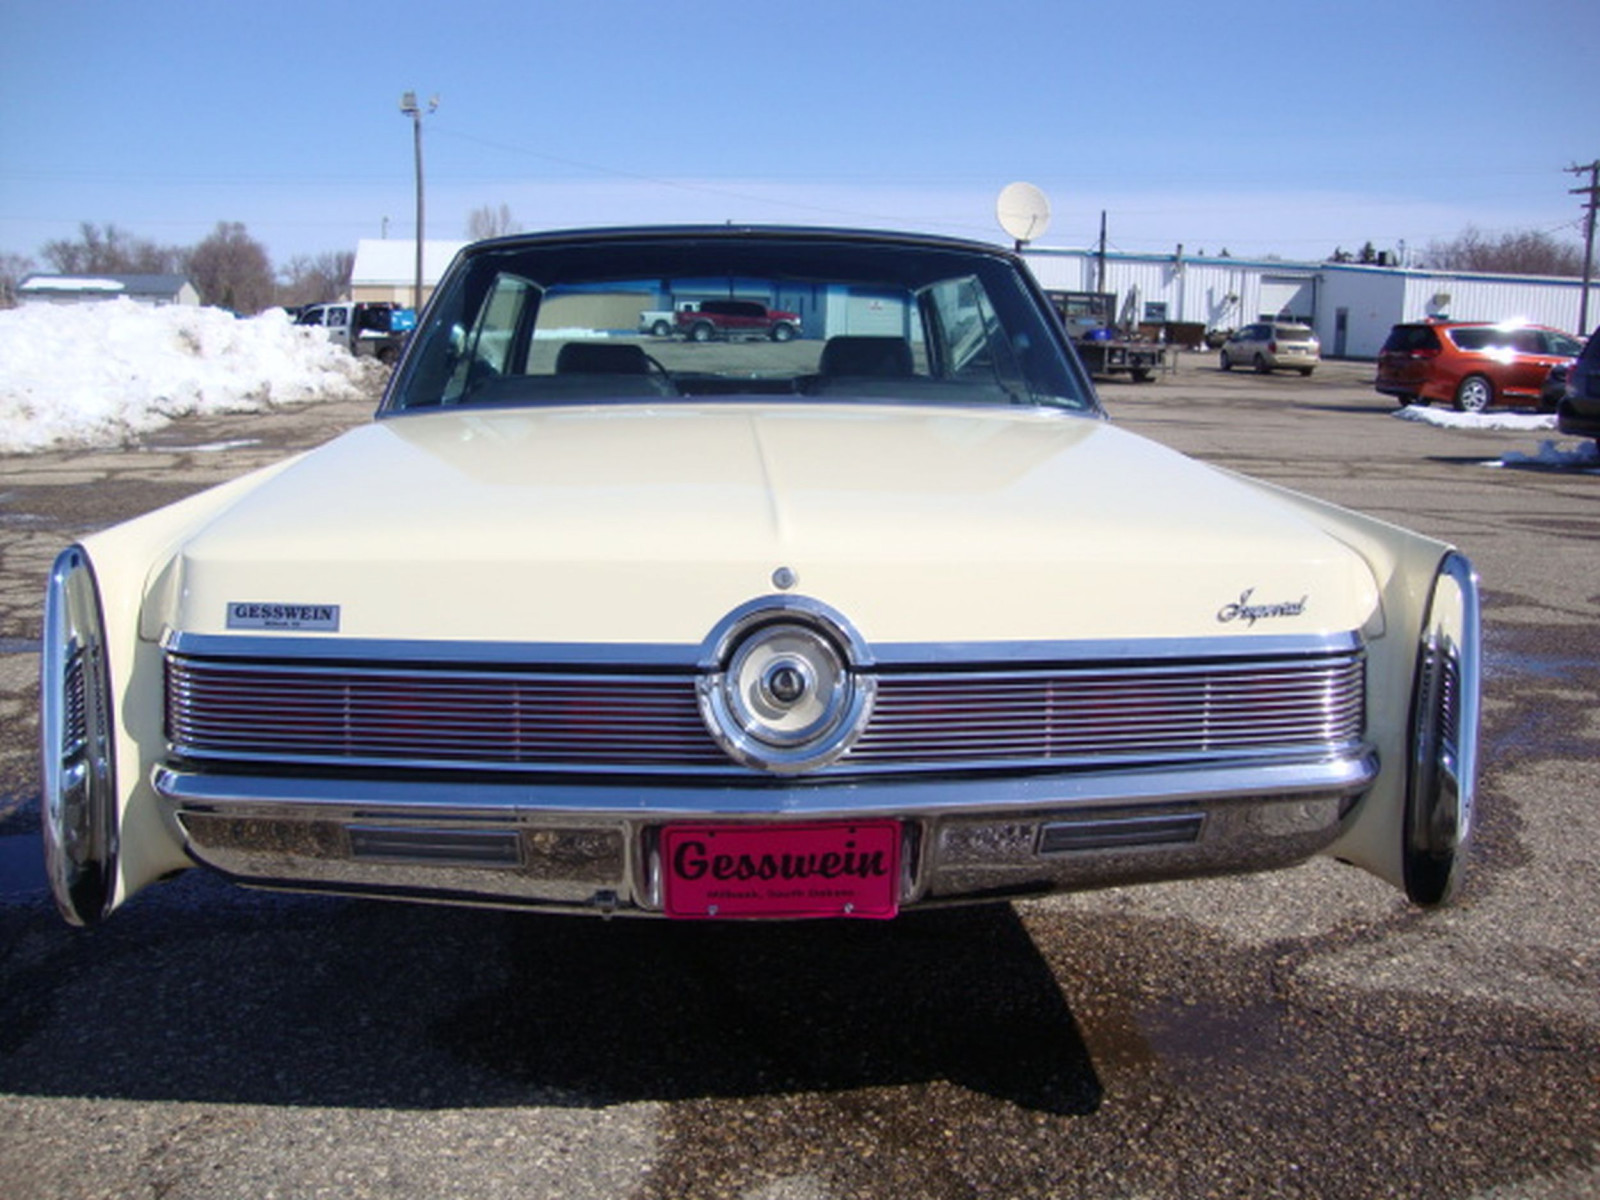 1967 Chrysler Imperial Crown Coupe - Image 9